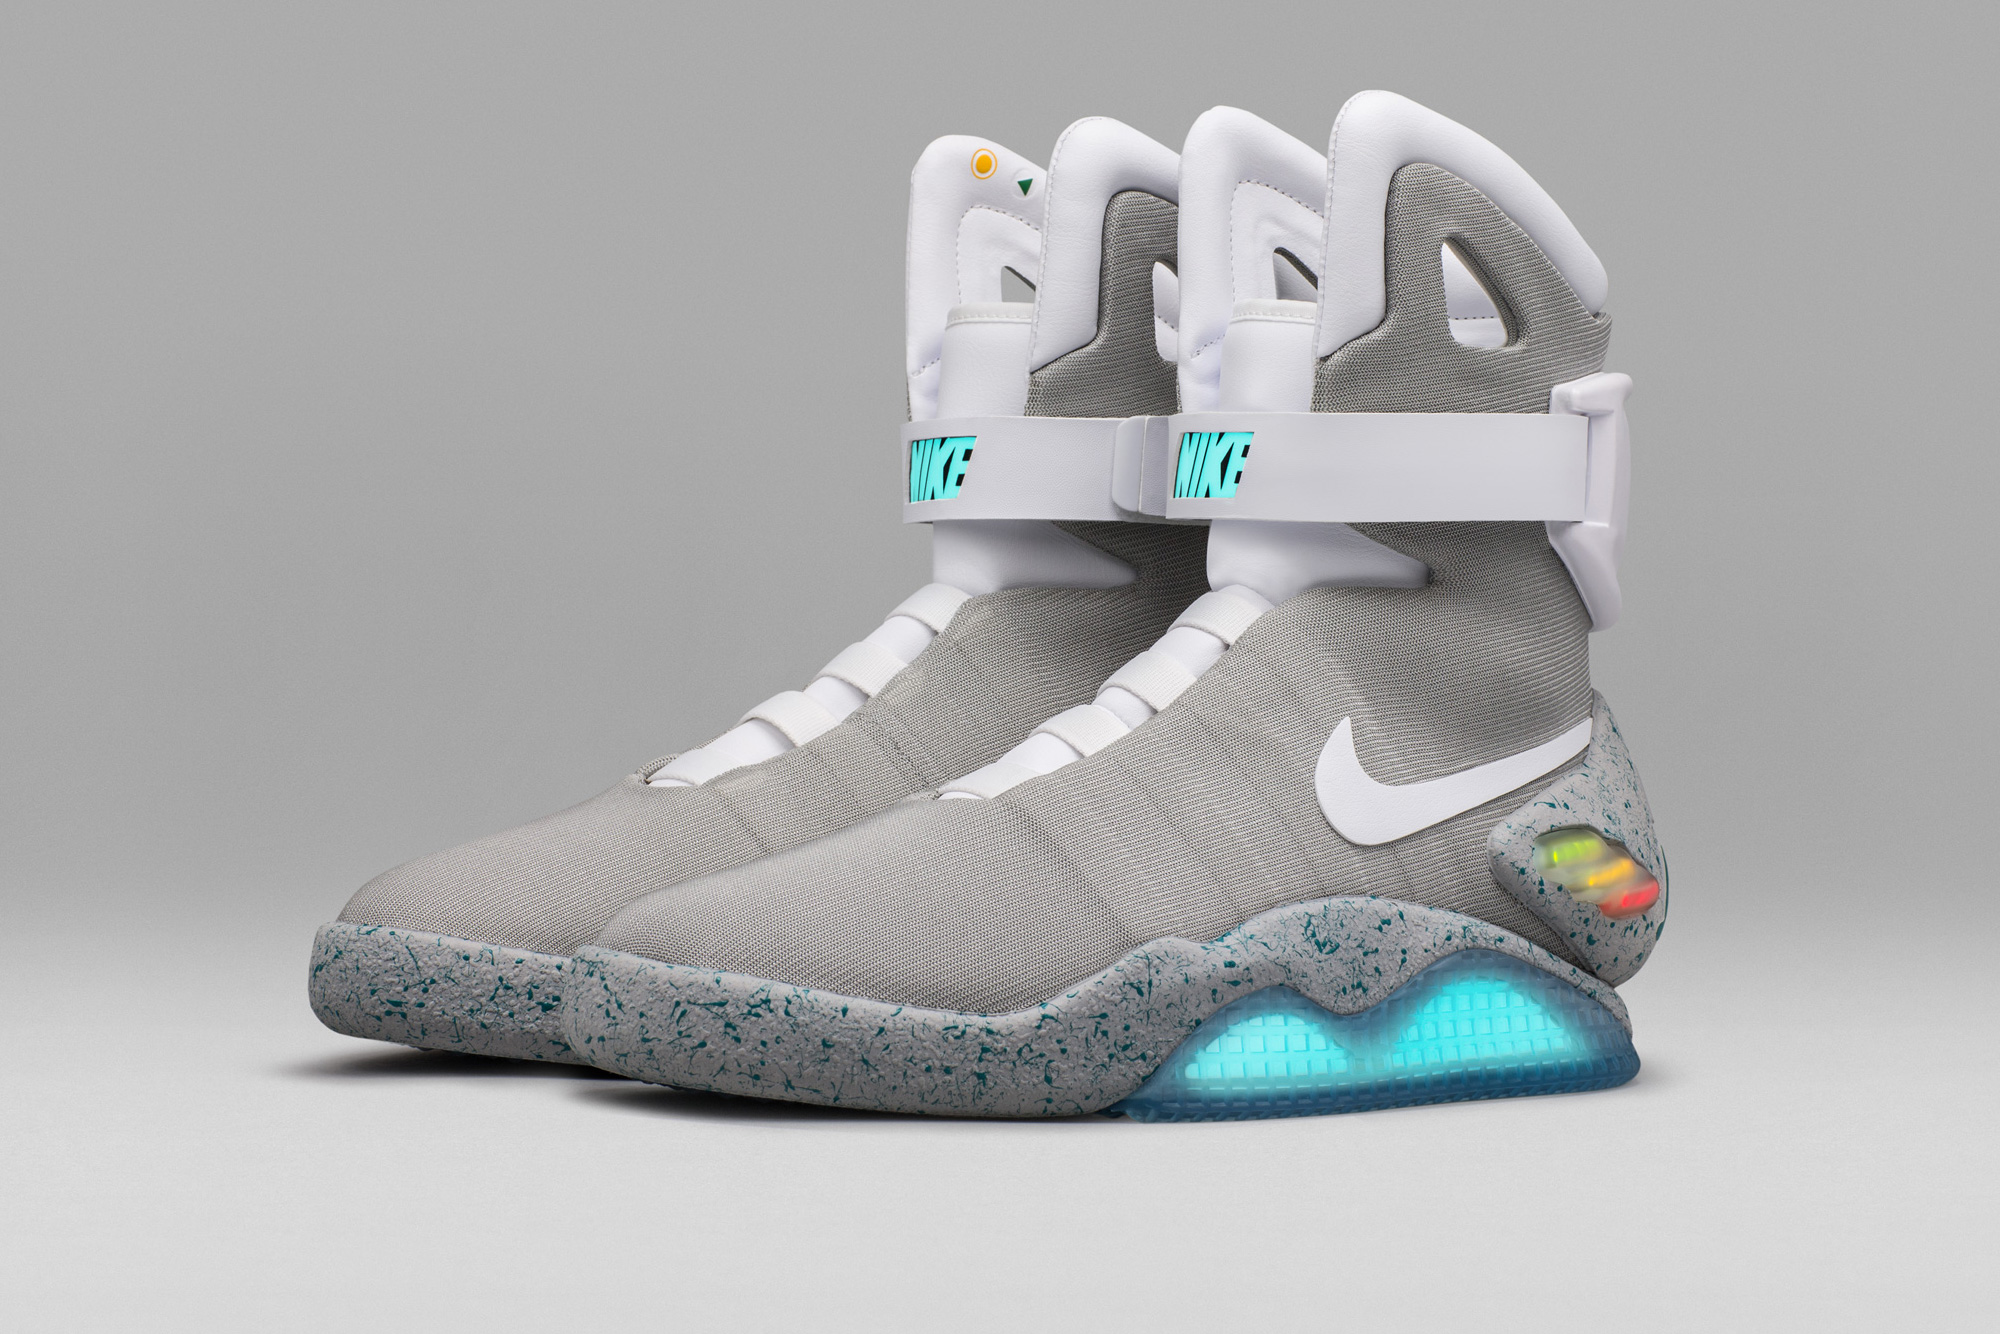 The Nike Mag Self-Lacing Sneakers Are